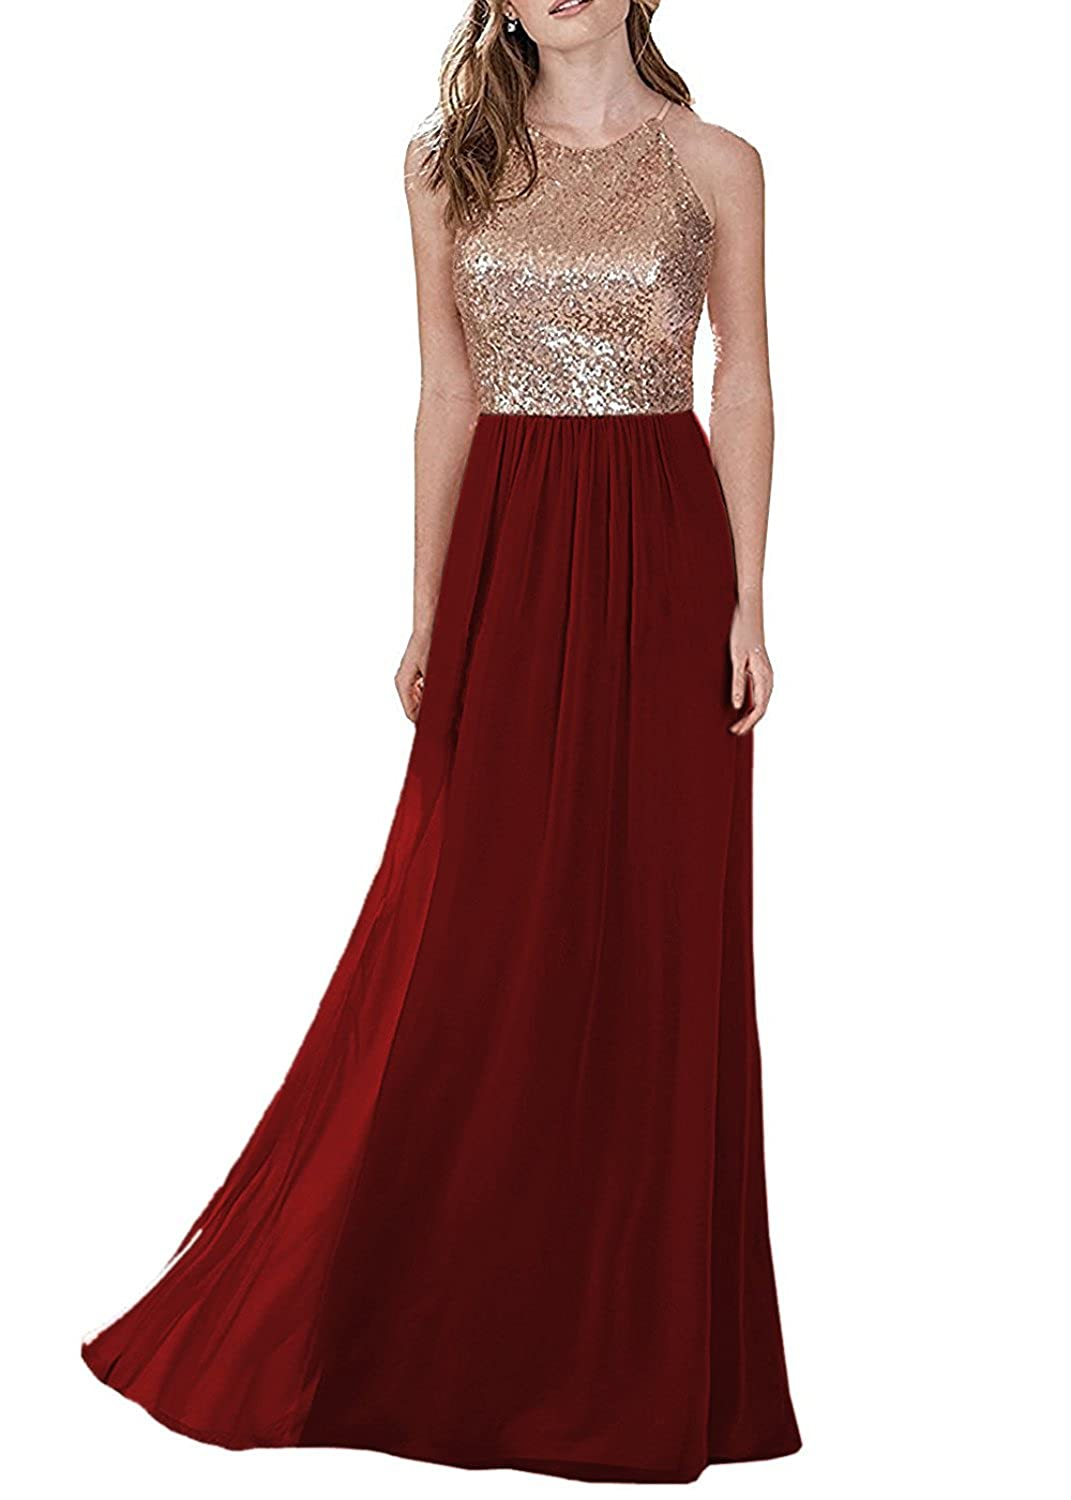 Burgundy LL Bridal Top Sequins pink gold Bridesmaid Dress Long Prom Party Dresses Evening